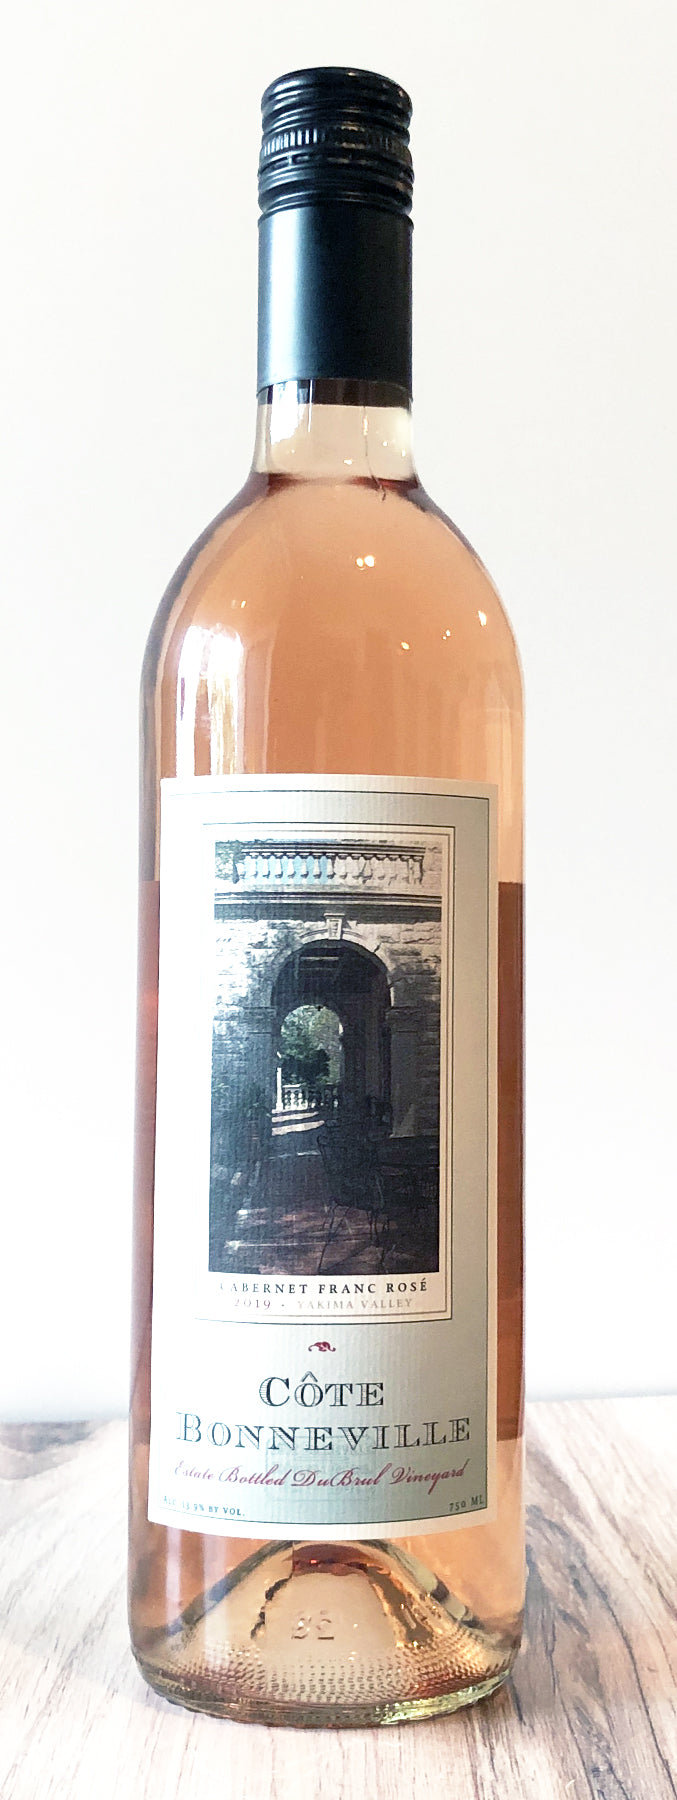 2019 Cote Bonneville Rose